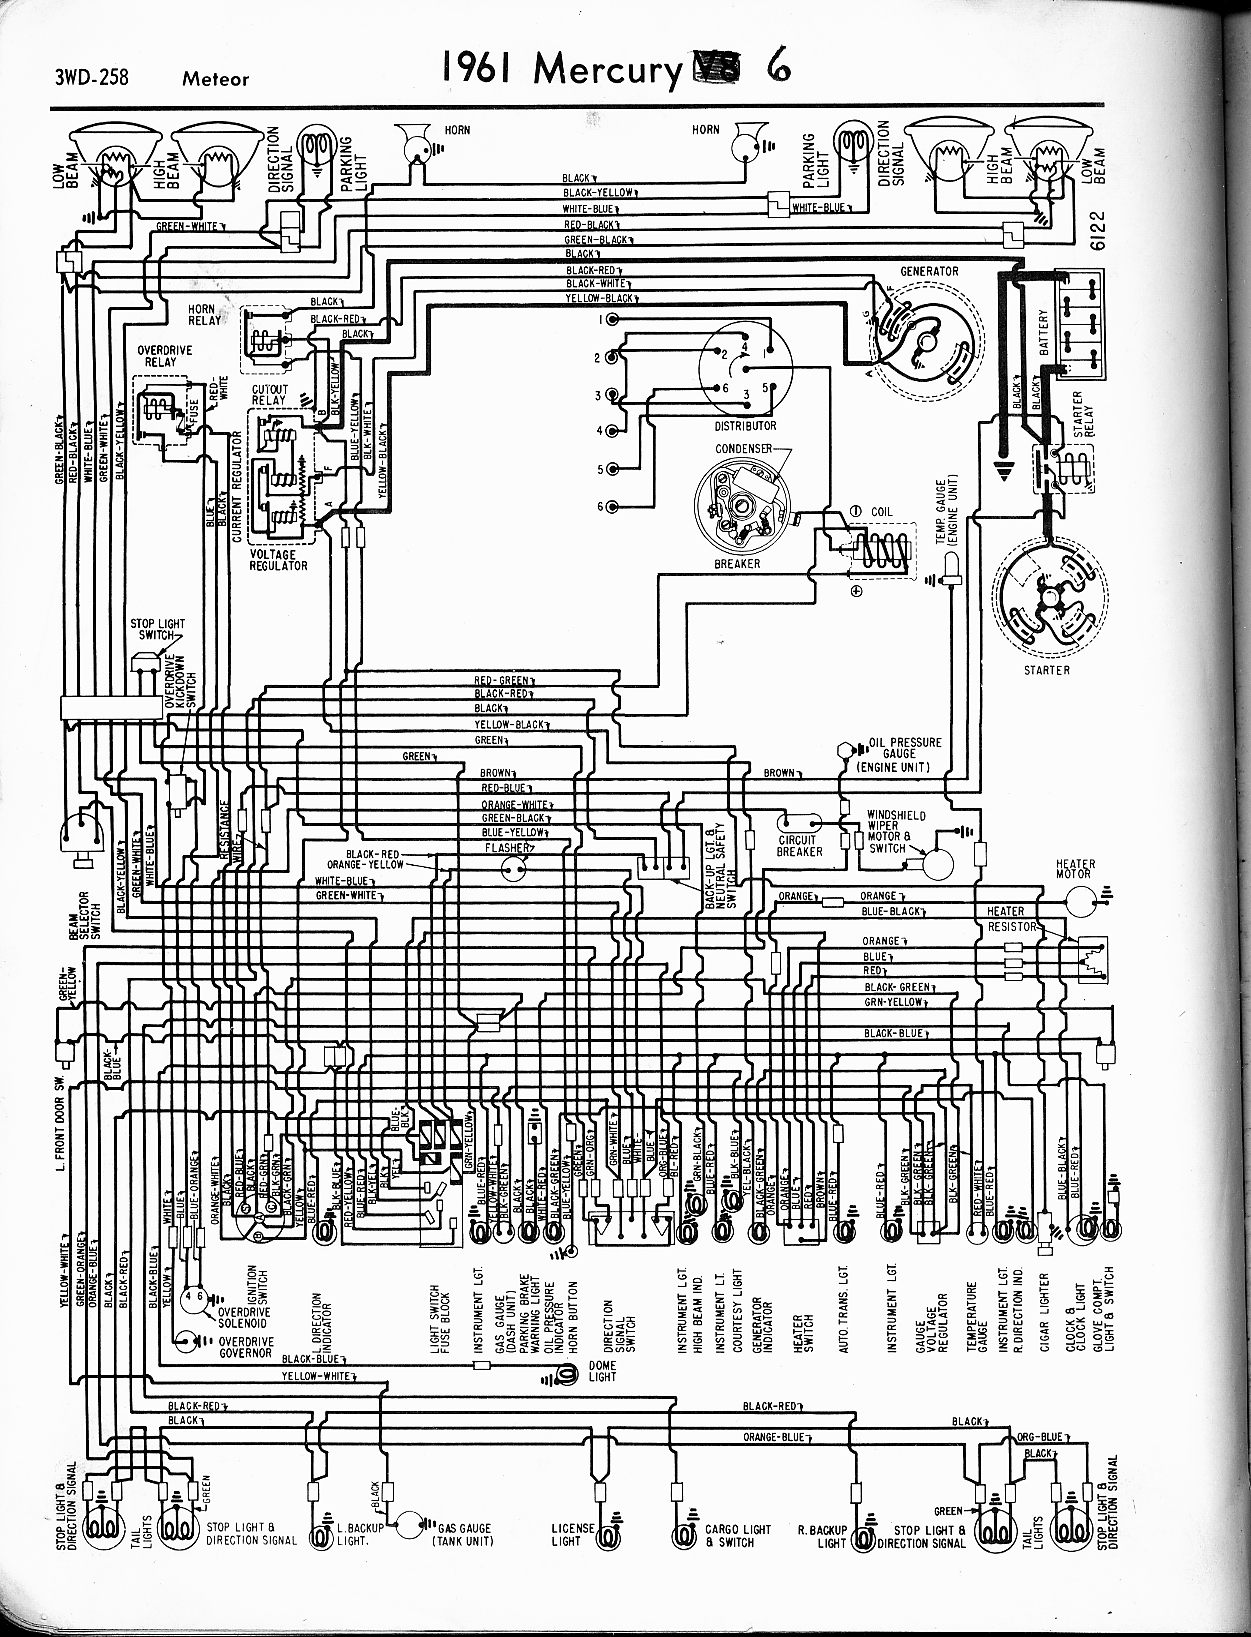 1964 ford ignition switch diagram wiring for car radio installation mercury diagrams - the old manual project